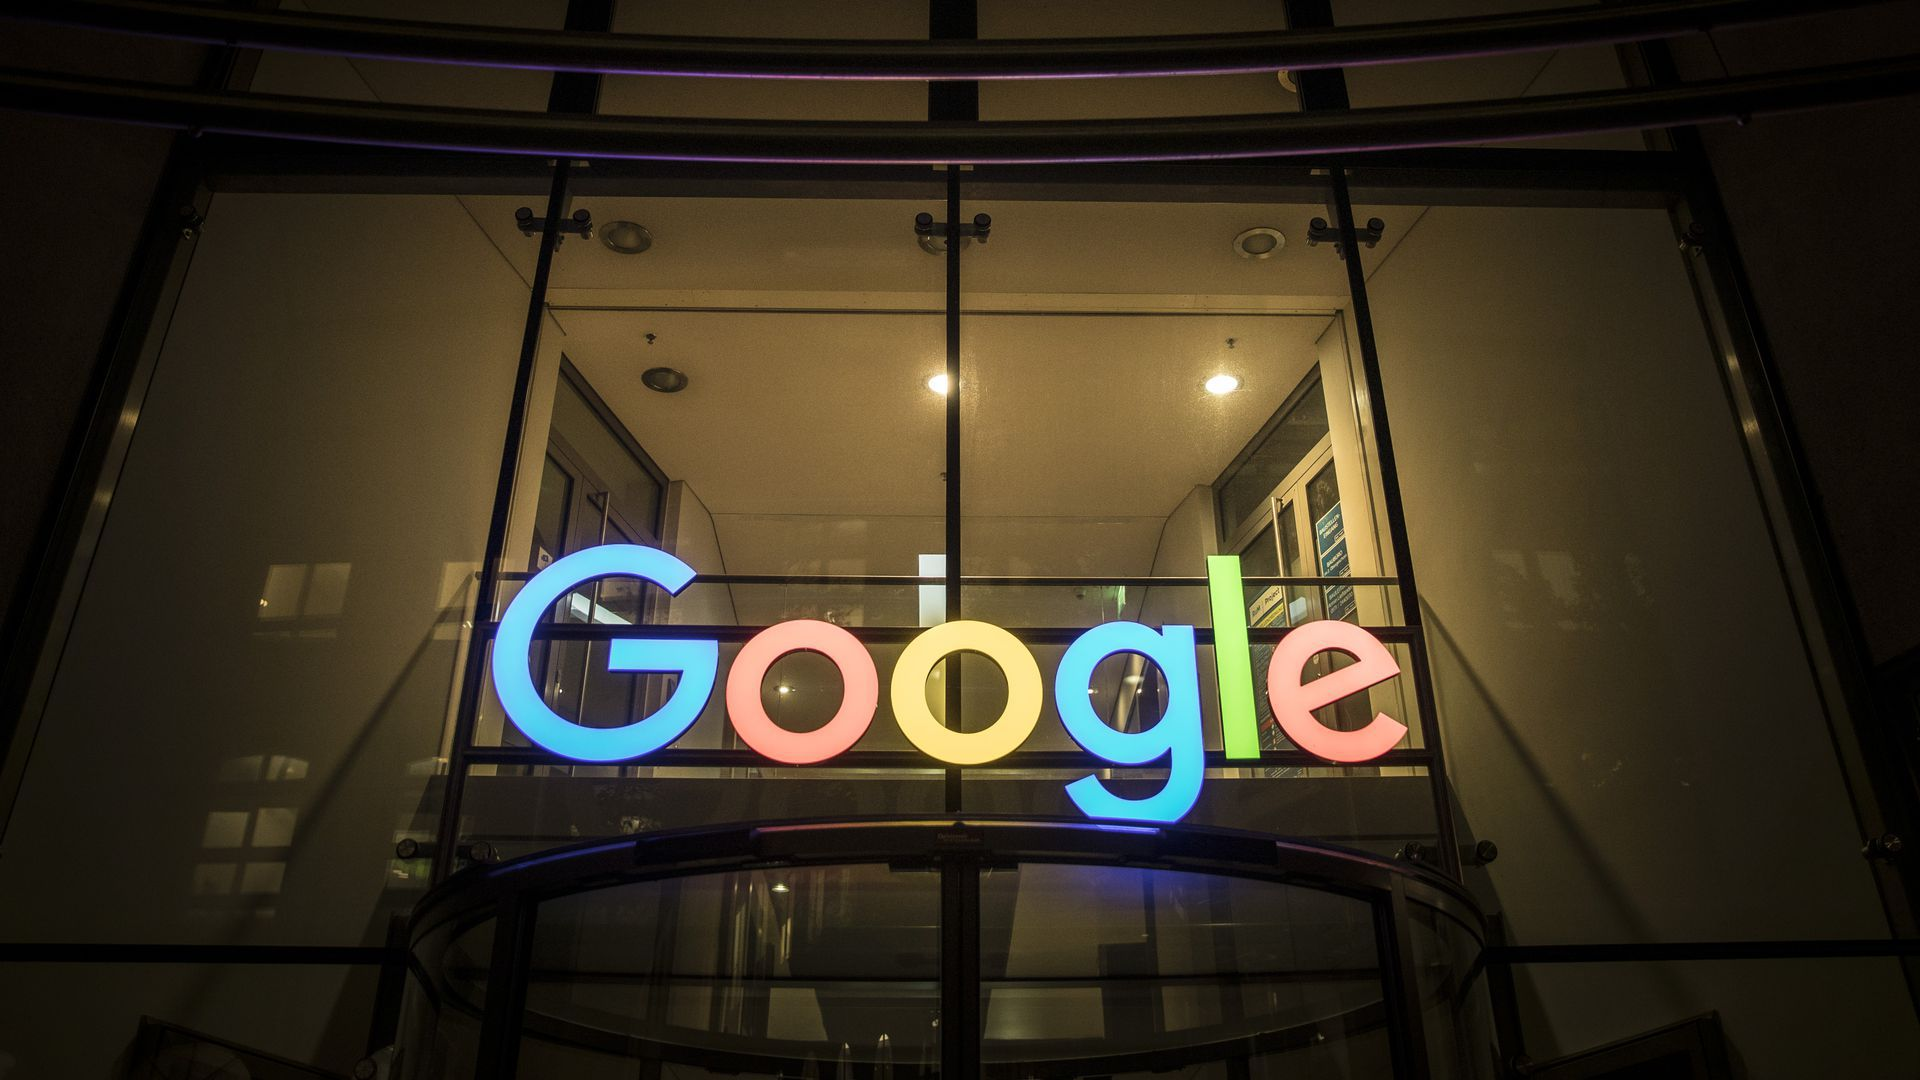 Google logo illuminated against a window at night